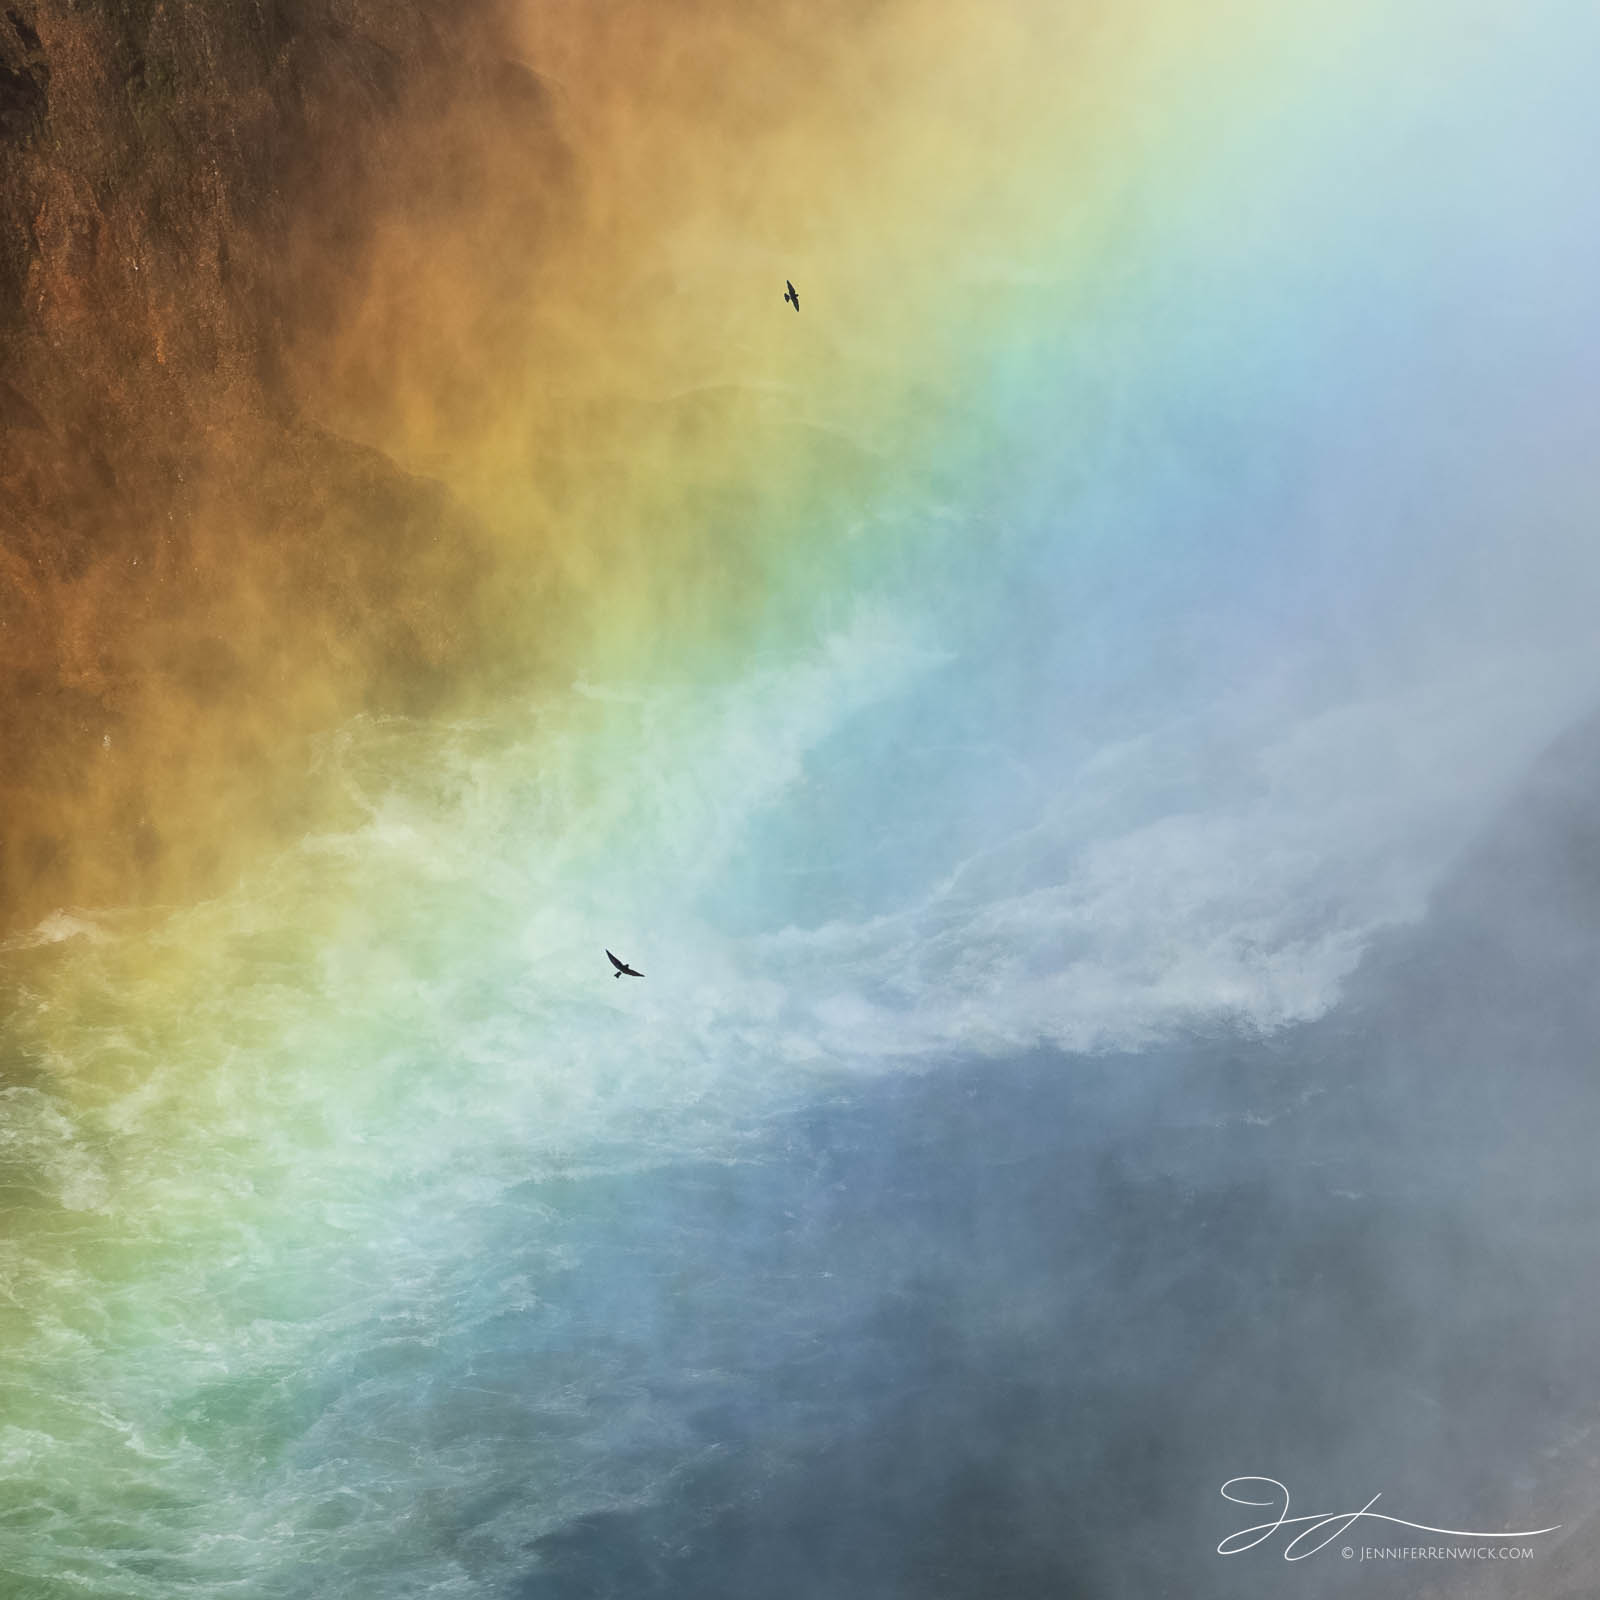 Violet-green swallows fly in and out of a rainbow created by a waterfall.